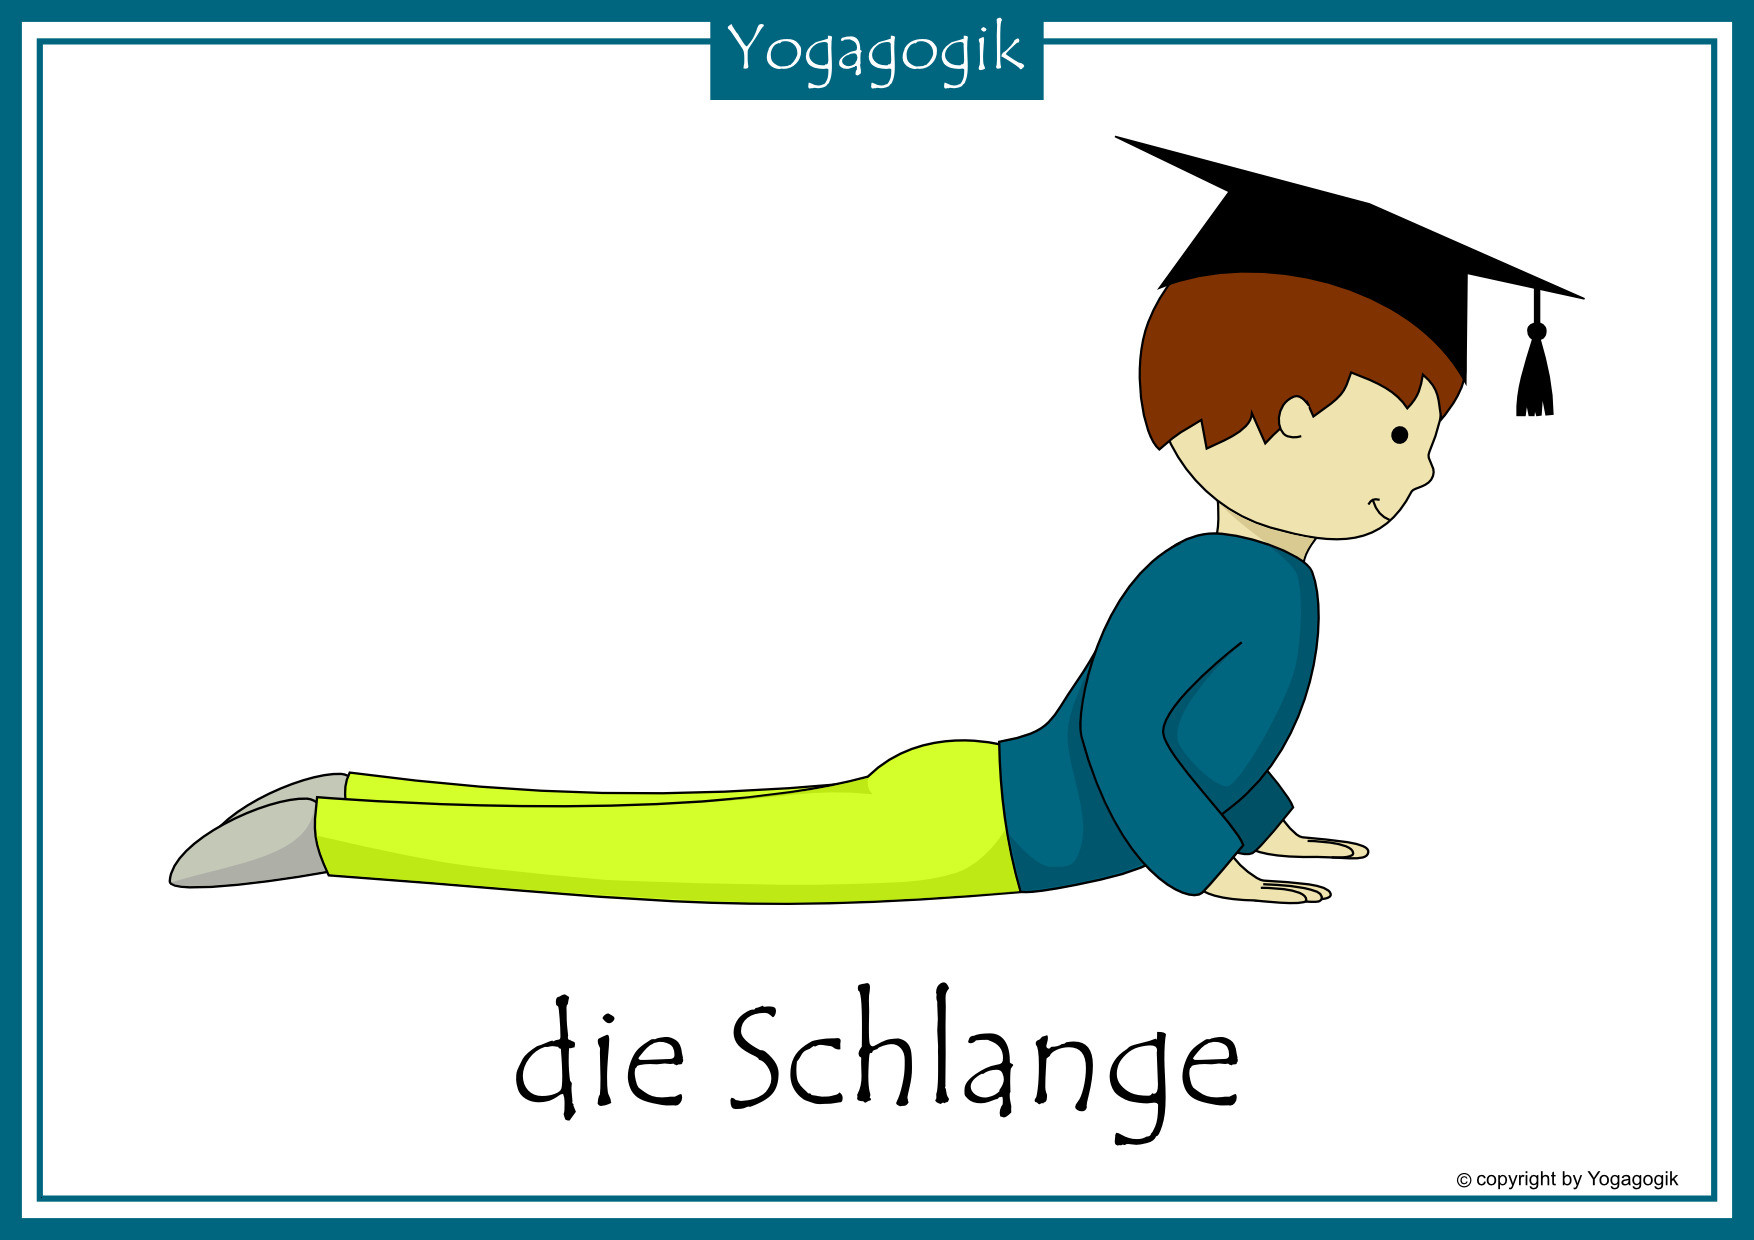 Anime Engel Ausmalbilder Inspirierend Kinderyoga Flashcards Schlange Beauty Day Deutsch Einzigartig Sammlung